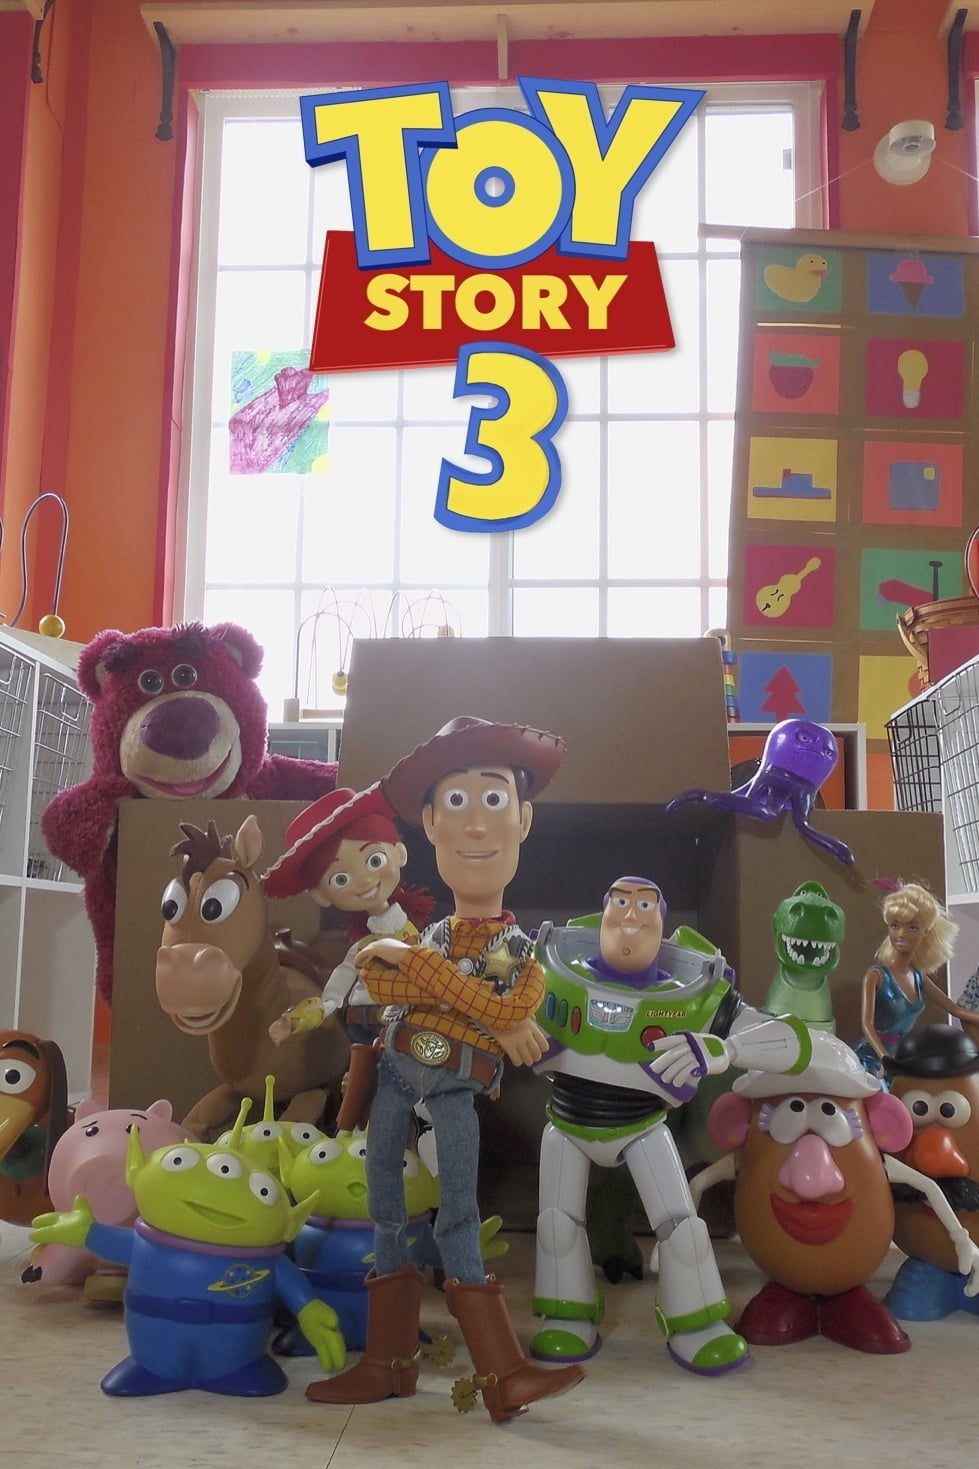 Toy Story 3 in Real Life (2020)